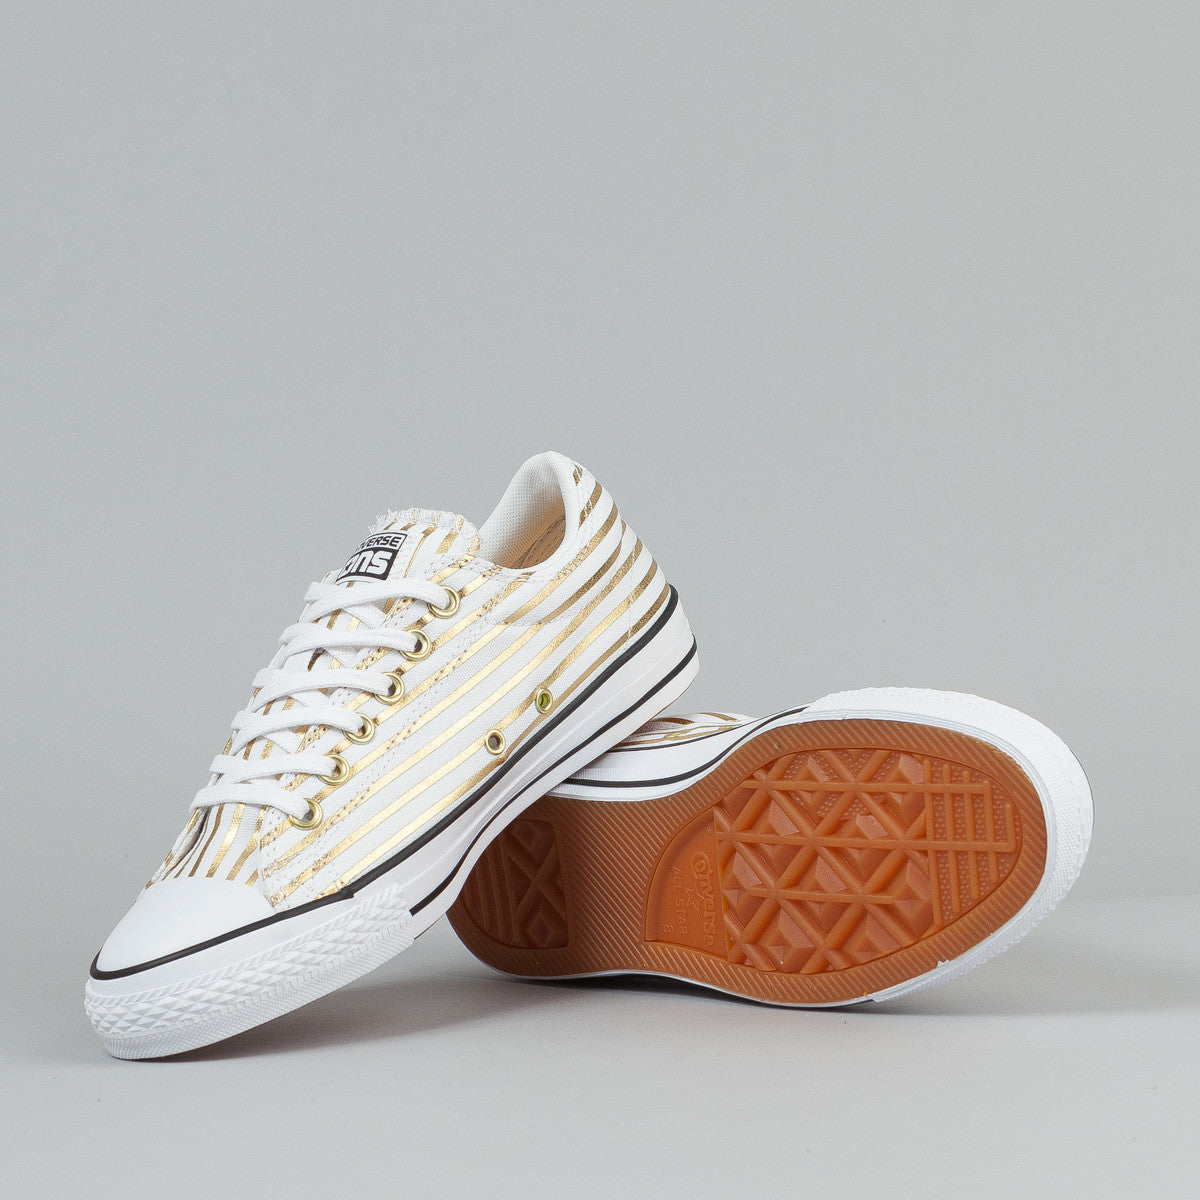 Converse X Fragment CTS OX Shoes - White / Rich Gold